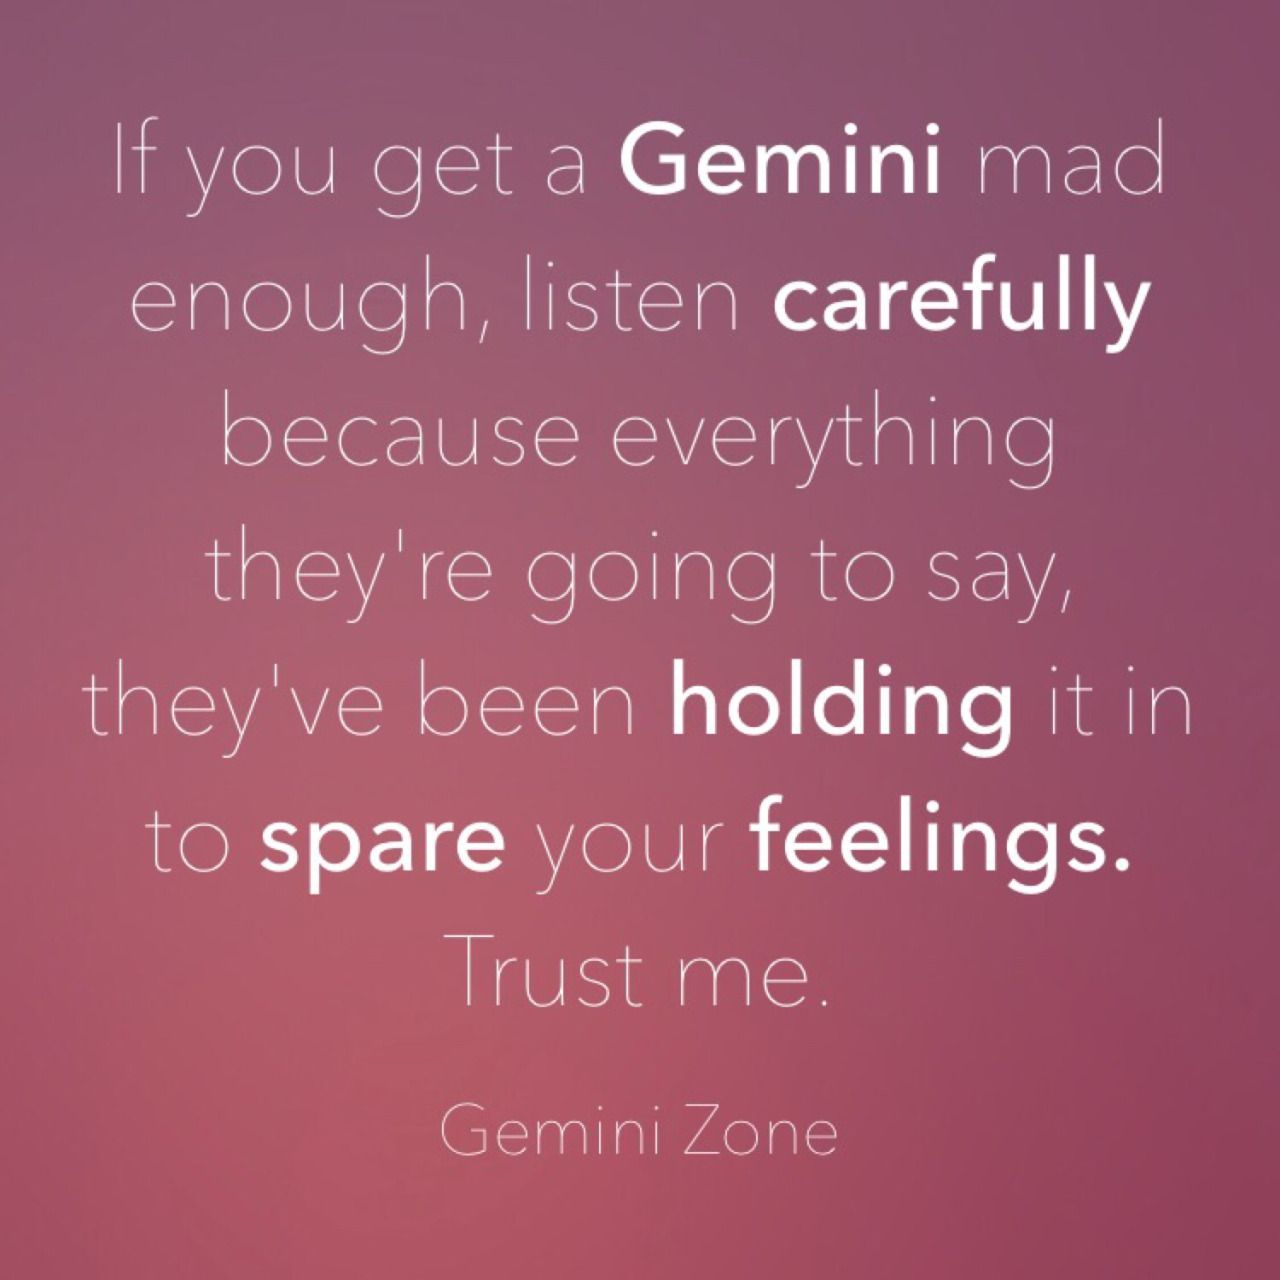 Do Gemini and Gemini fit each other